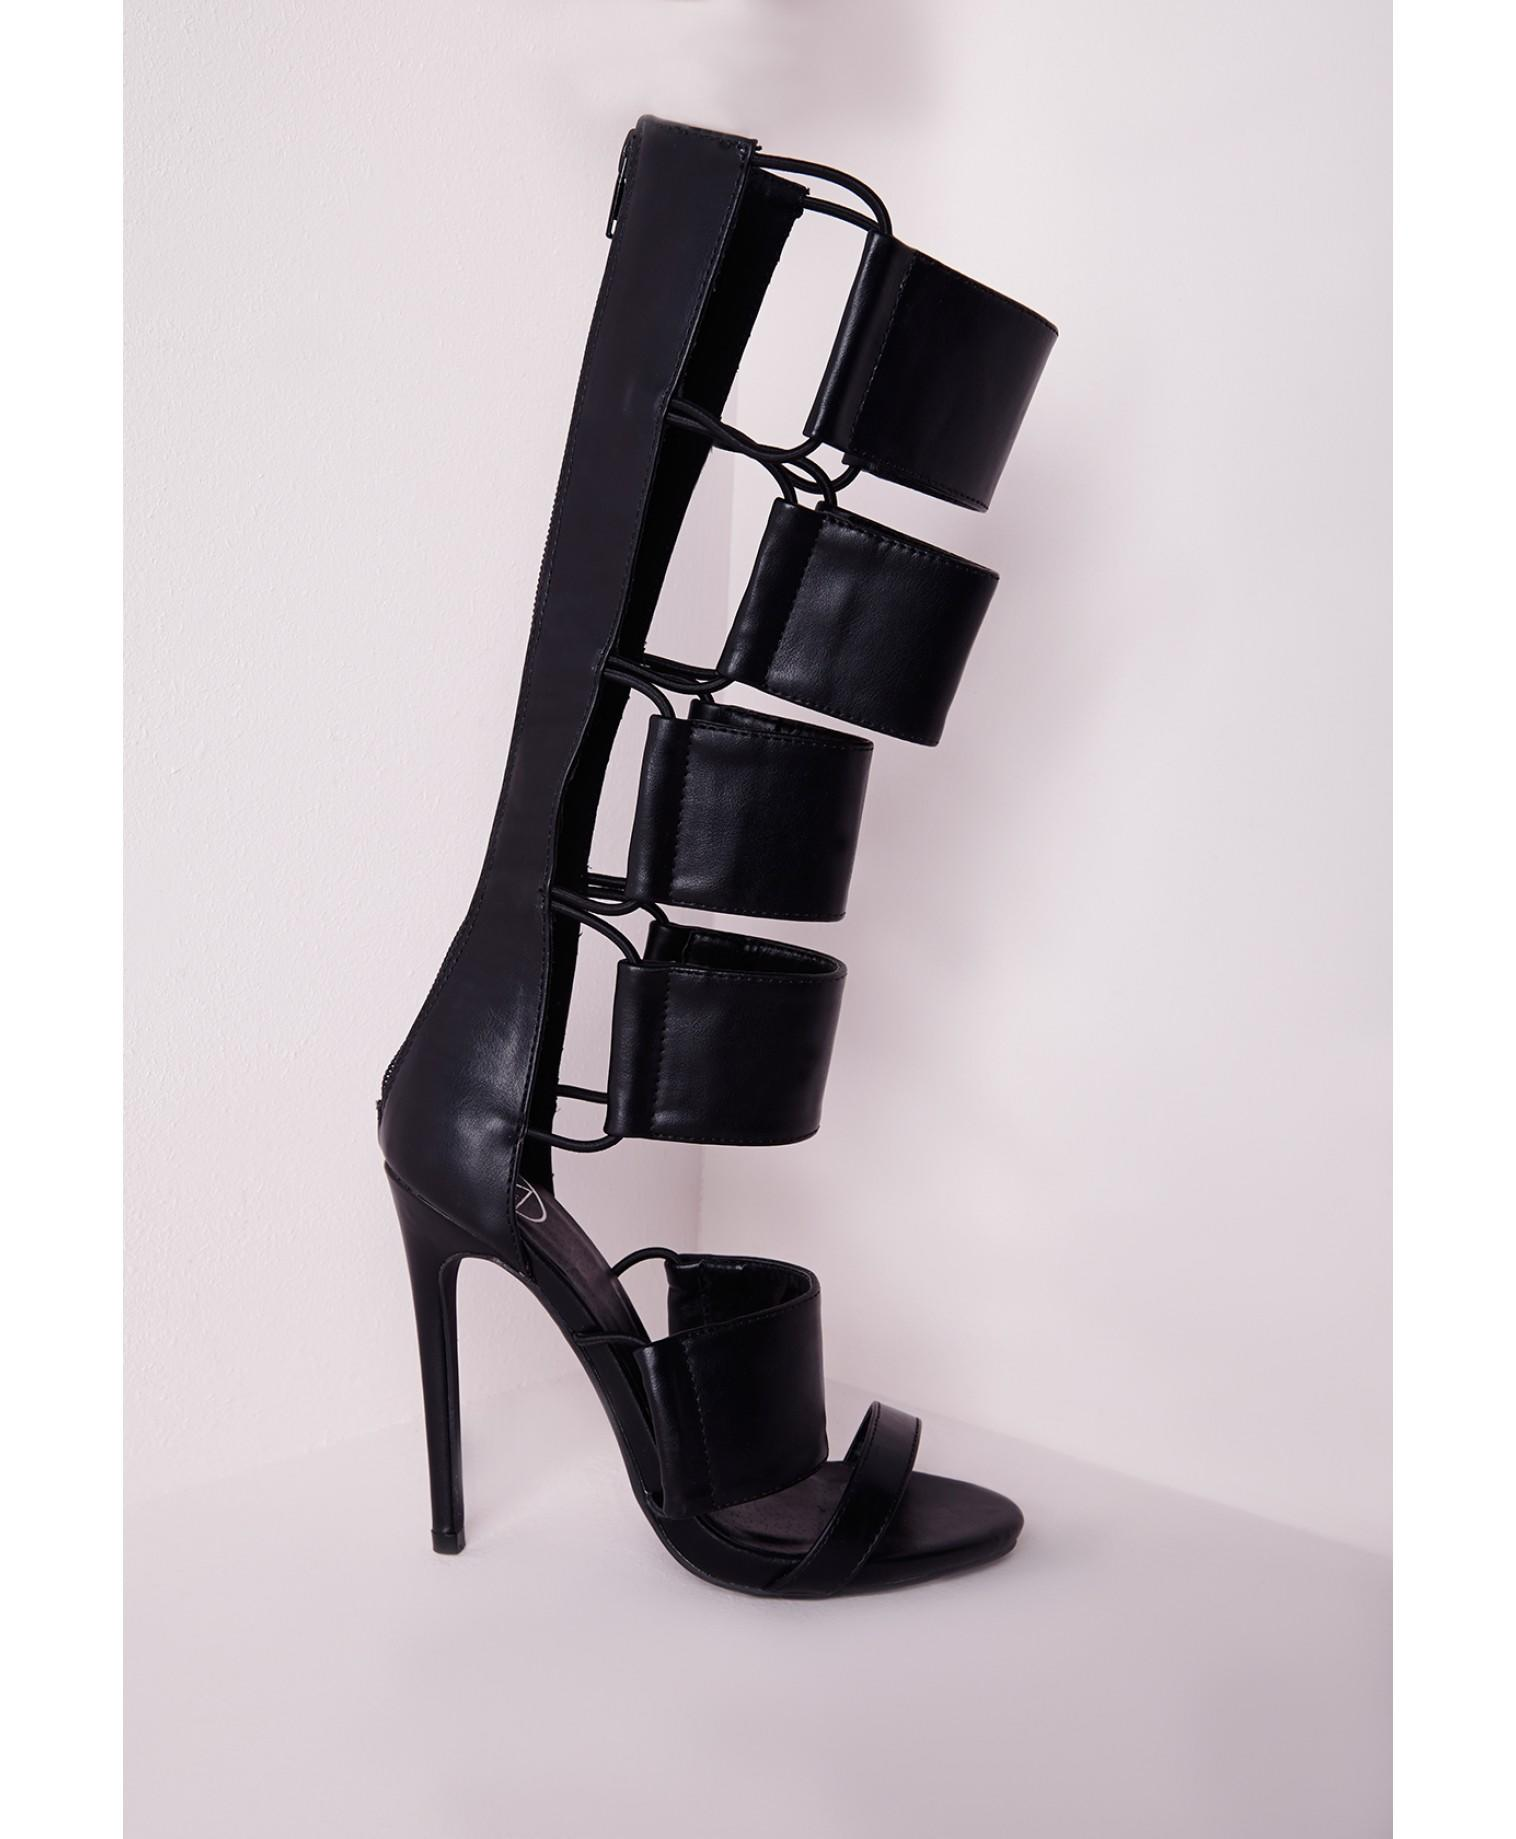 c40f46ce650 Missguided - Elastic Detail Gladiator from MISSGUIDED